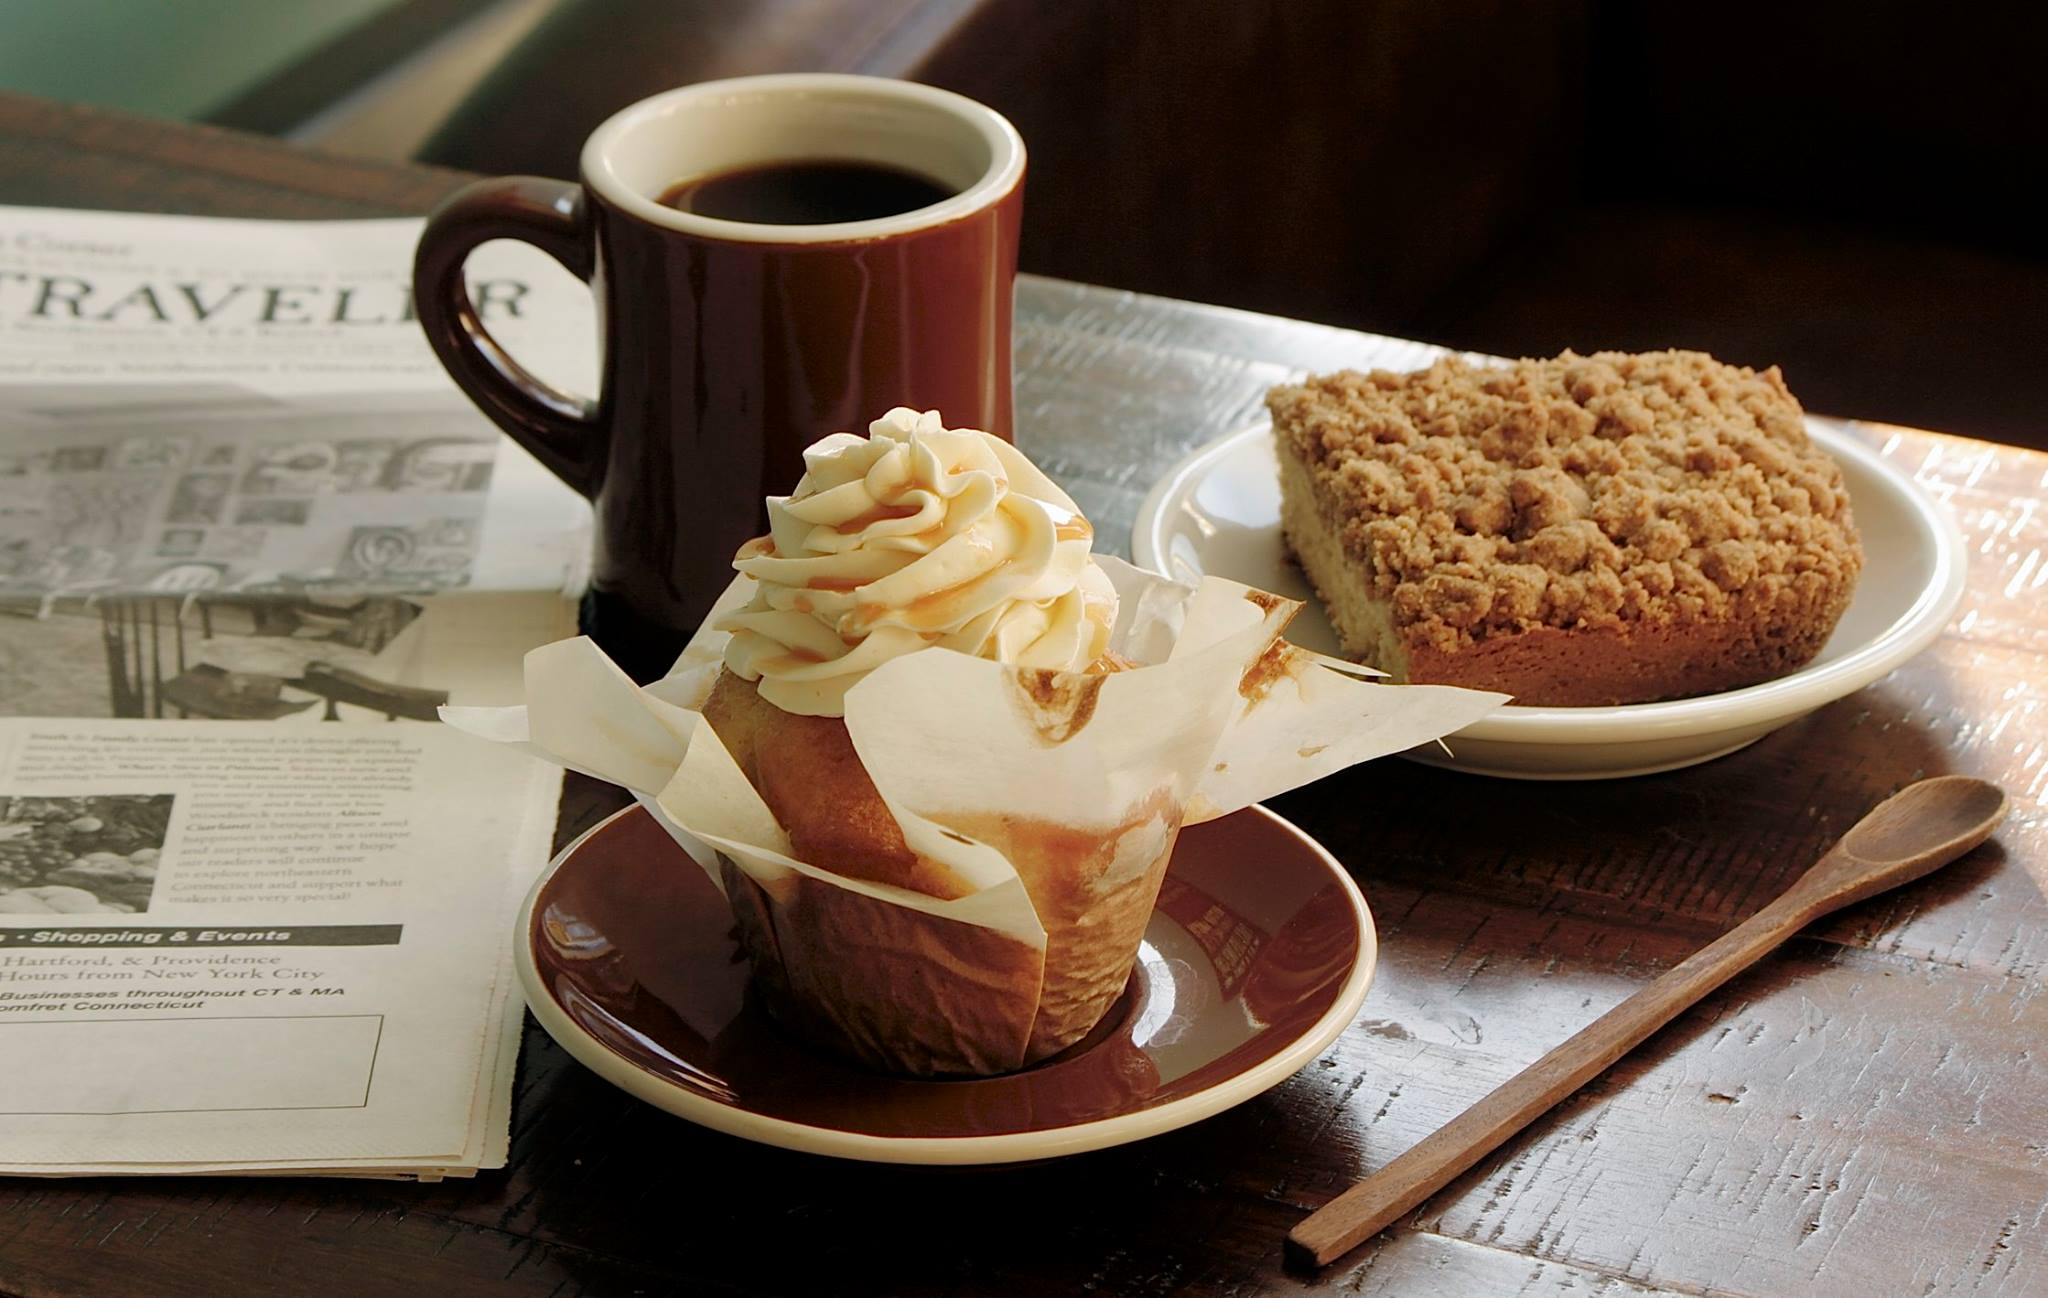 Coffee with cupcake and newspaper